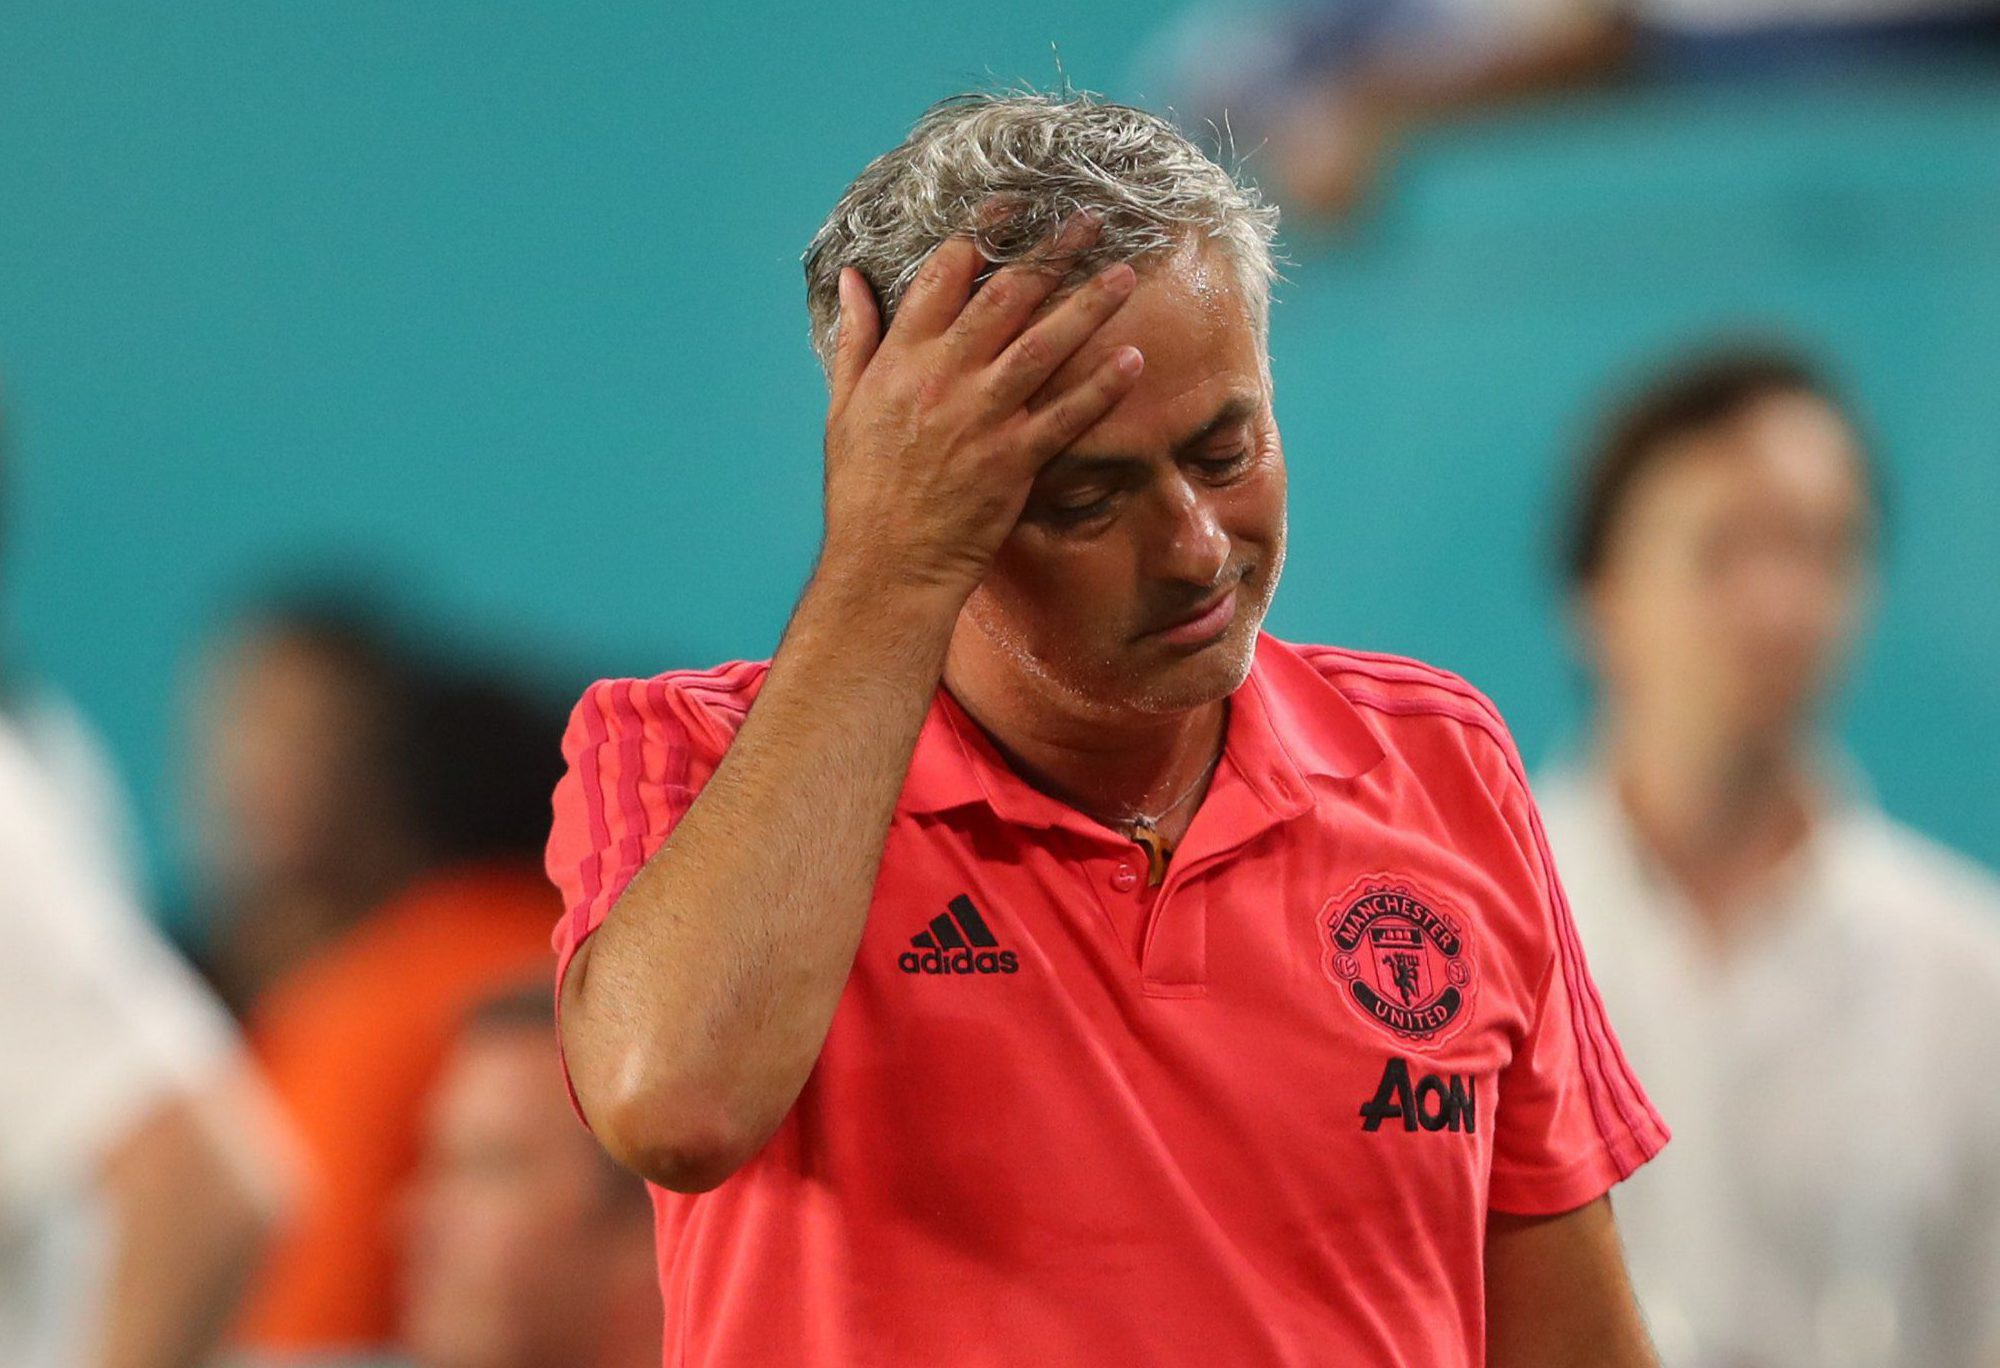 MIAMI, FL - JULY 31: A dejected Jose Mourinho the head coach / manager of Manchester United at full time during the International Champions Cup 2018 fixture between Manchester United v Real Madrid at Hard Rock Stadium on July 31, 2018 in Miami, Florida. (Photo by Robbie Jay Barratt - AMA/Getty Images)